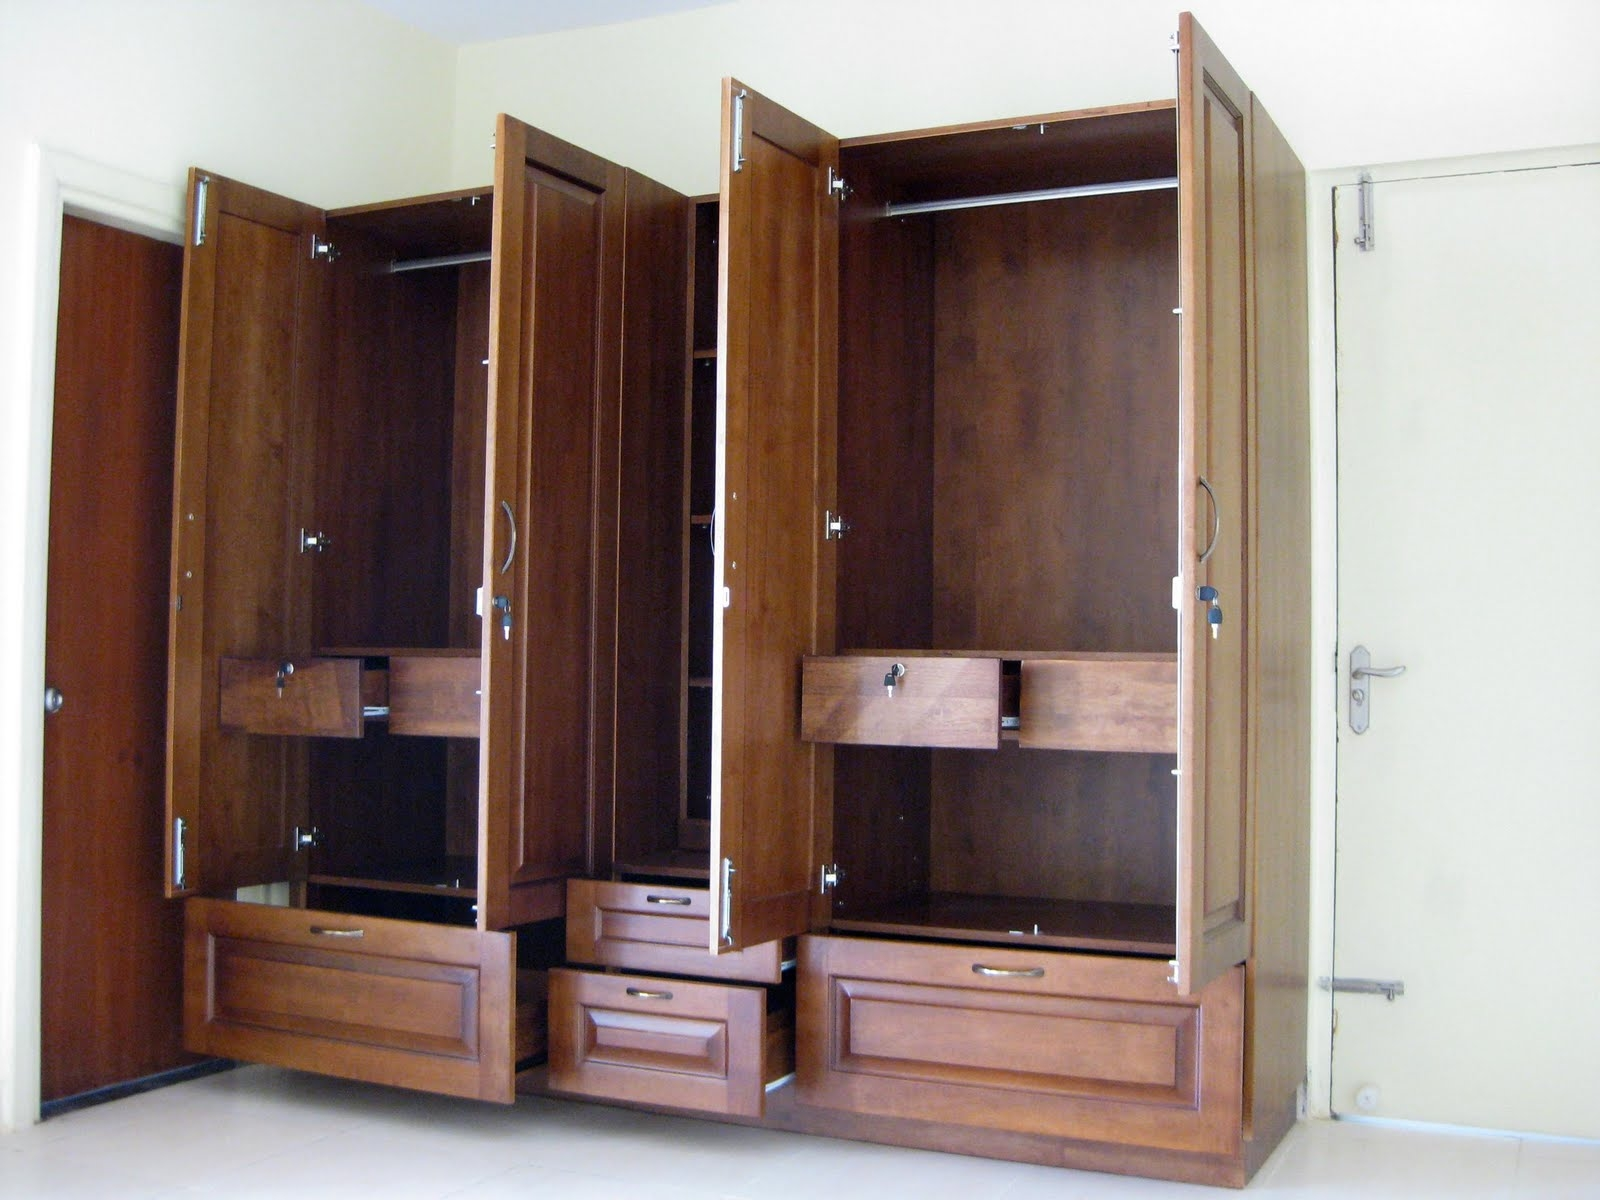 Spacious Wardrobes For High End Wardrobesbangalore Httpwww Within Large Wooden Wardrobes (Image 22 of 25)